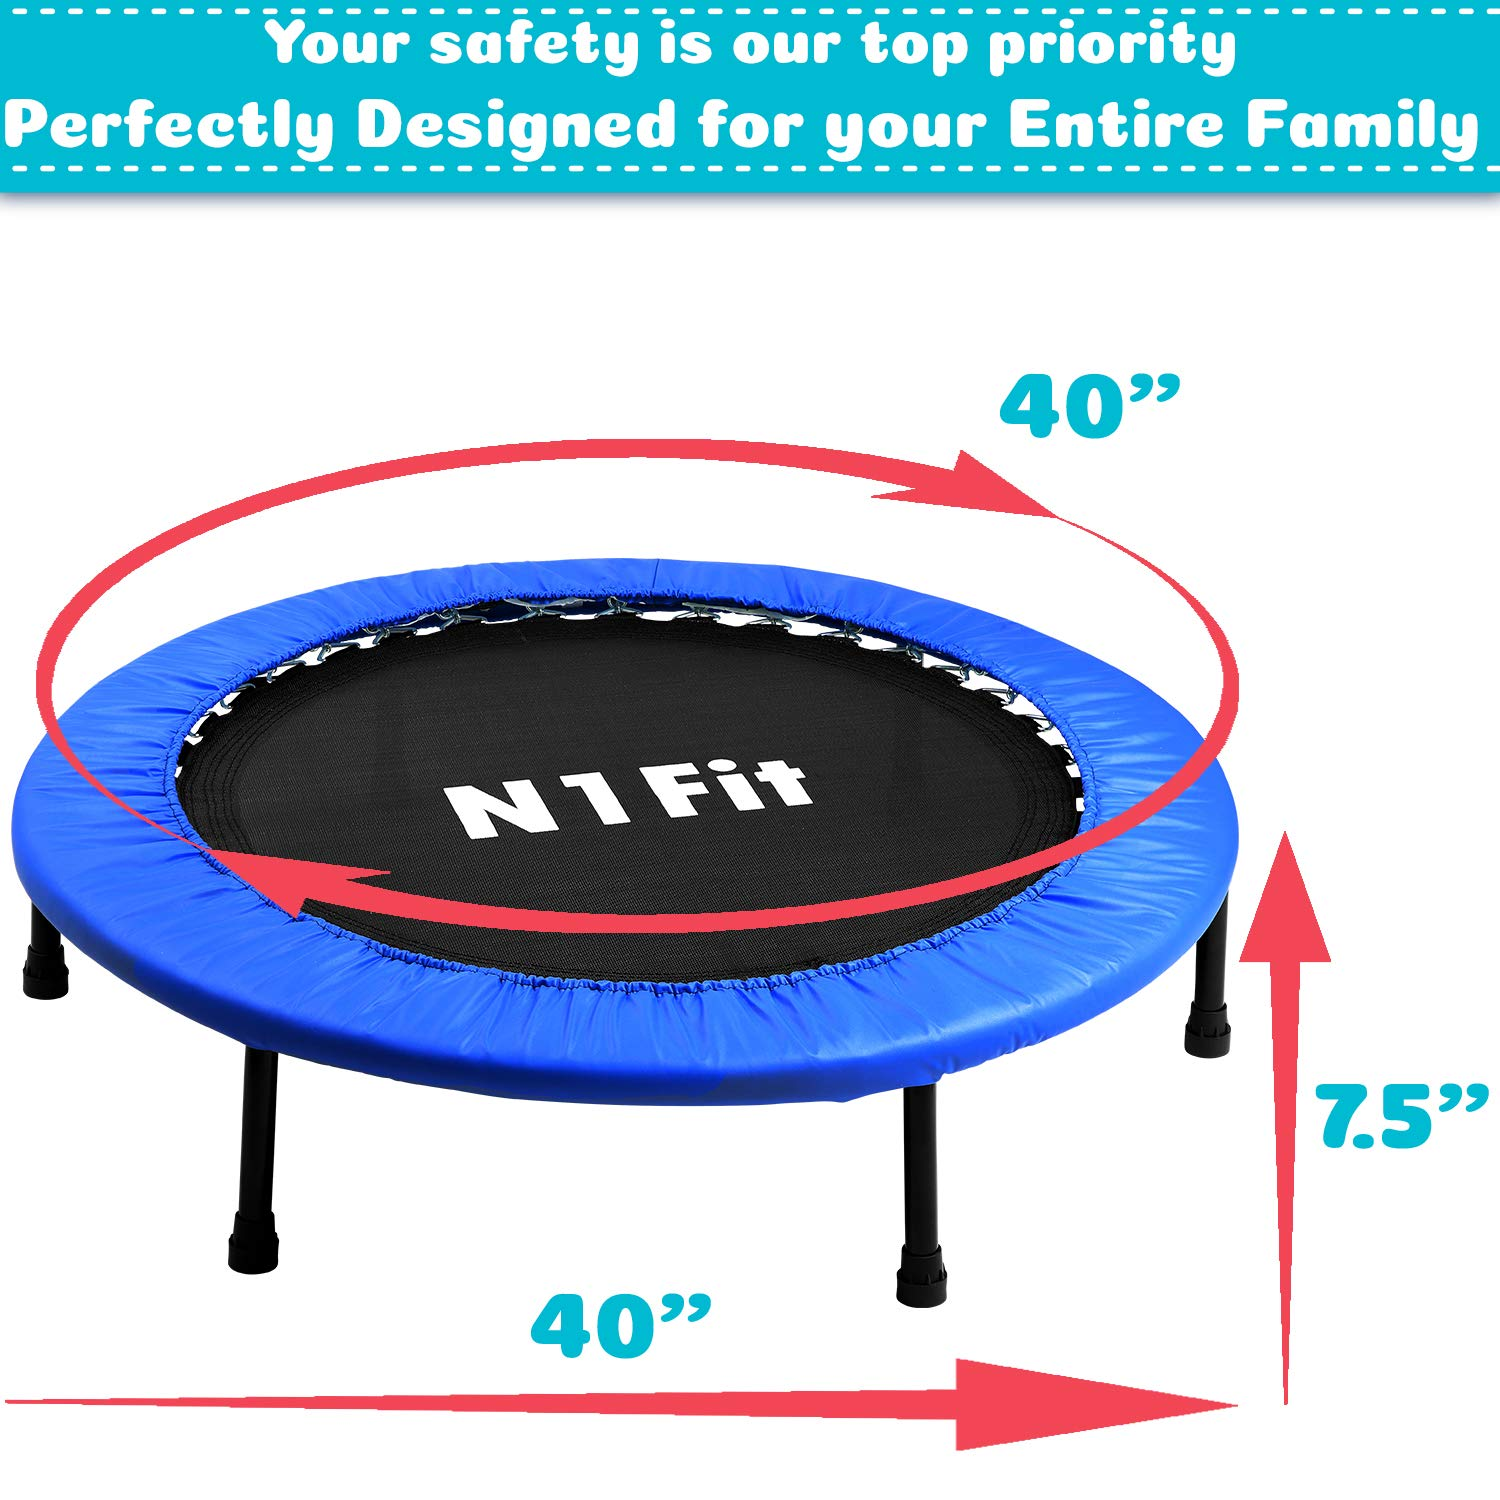 N1Fit Mini Trampoline for Adults - Exercise Trampoline, Mini Trampolines, Personal Trampoline, Trampoline Small Indoor, Rebounding Tiny Trampoline with Springs System for Home Cardio Workouts 40'' by N1Fit (Image #2)